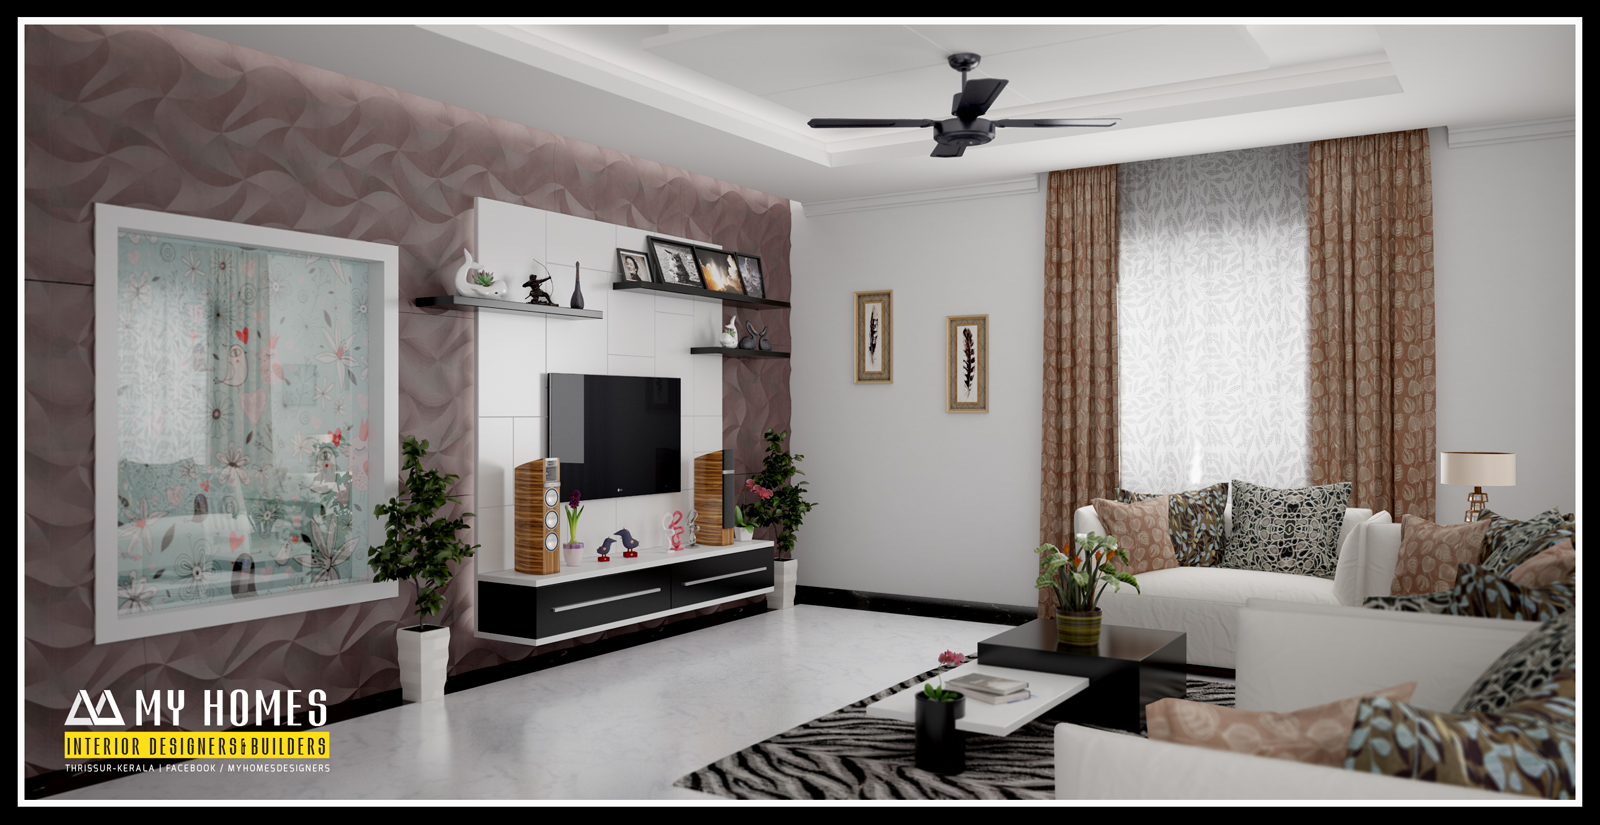 Home Interior Design Ideas India. Elegant Living home interiors in kerala interior design ideas from designing company thrissur